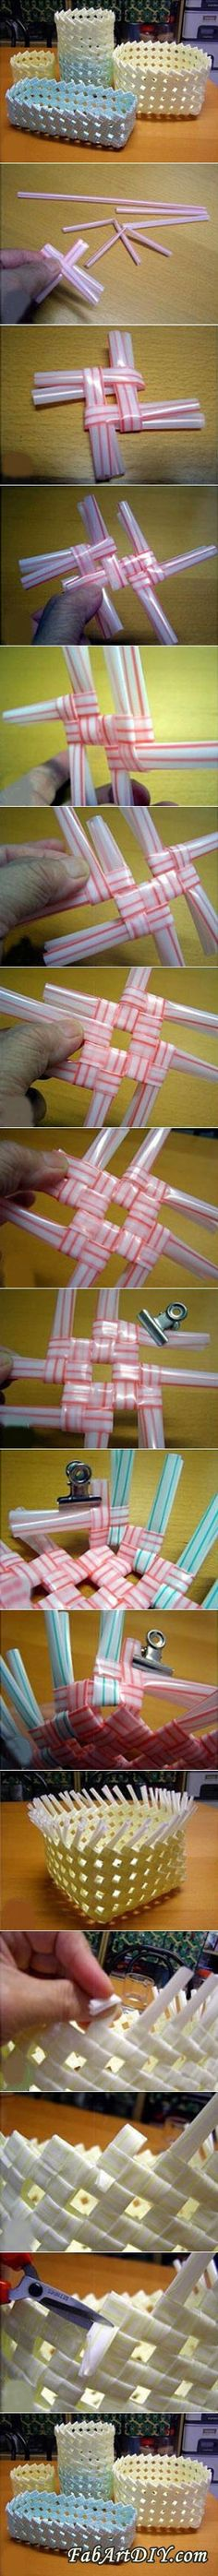 DIY Drinking Straw Basket | www.FabArtDIY.com LIKE Us on Facebook ==> https://www.facebook.com/FabArtDIY